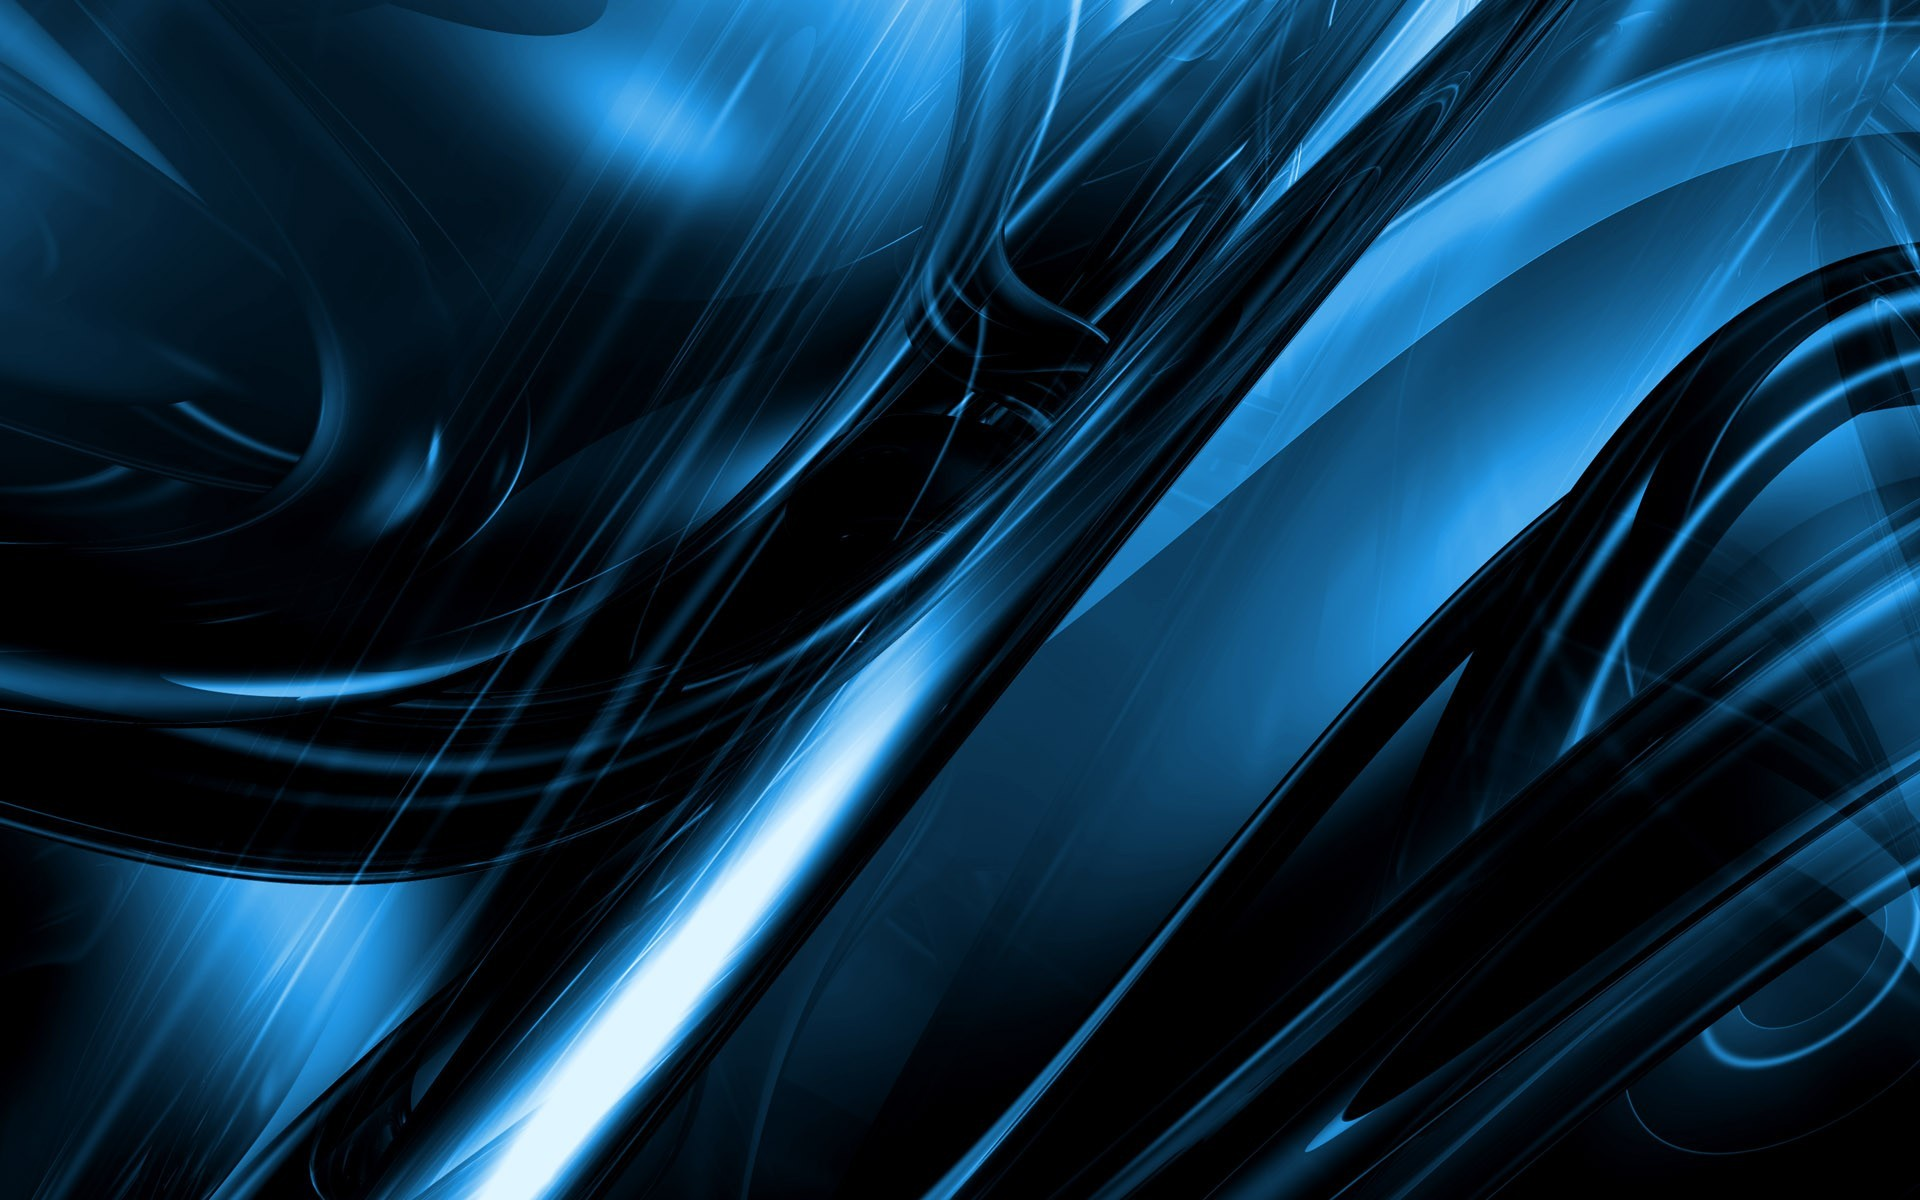 Shiny Blue Wallpaper